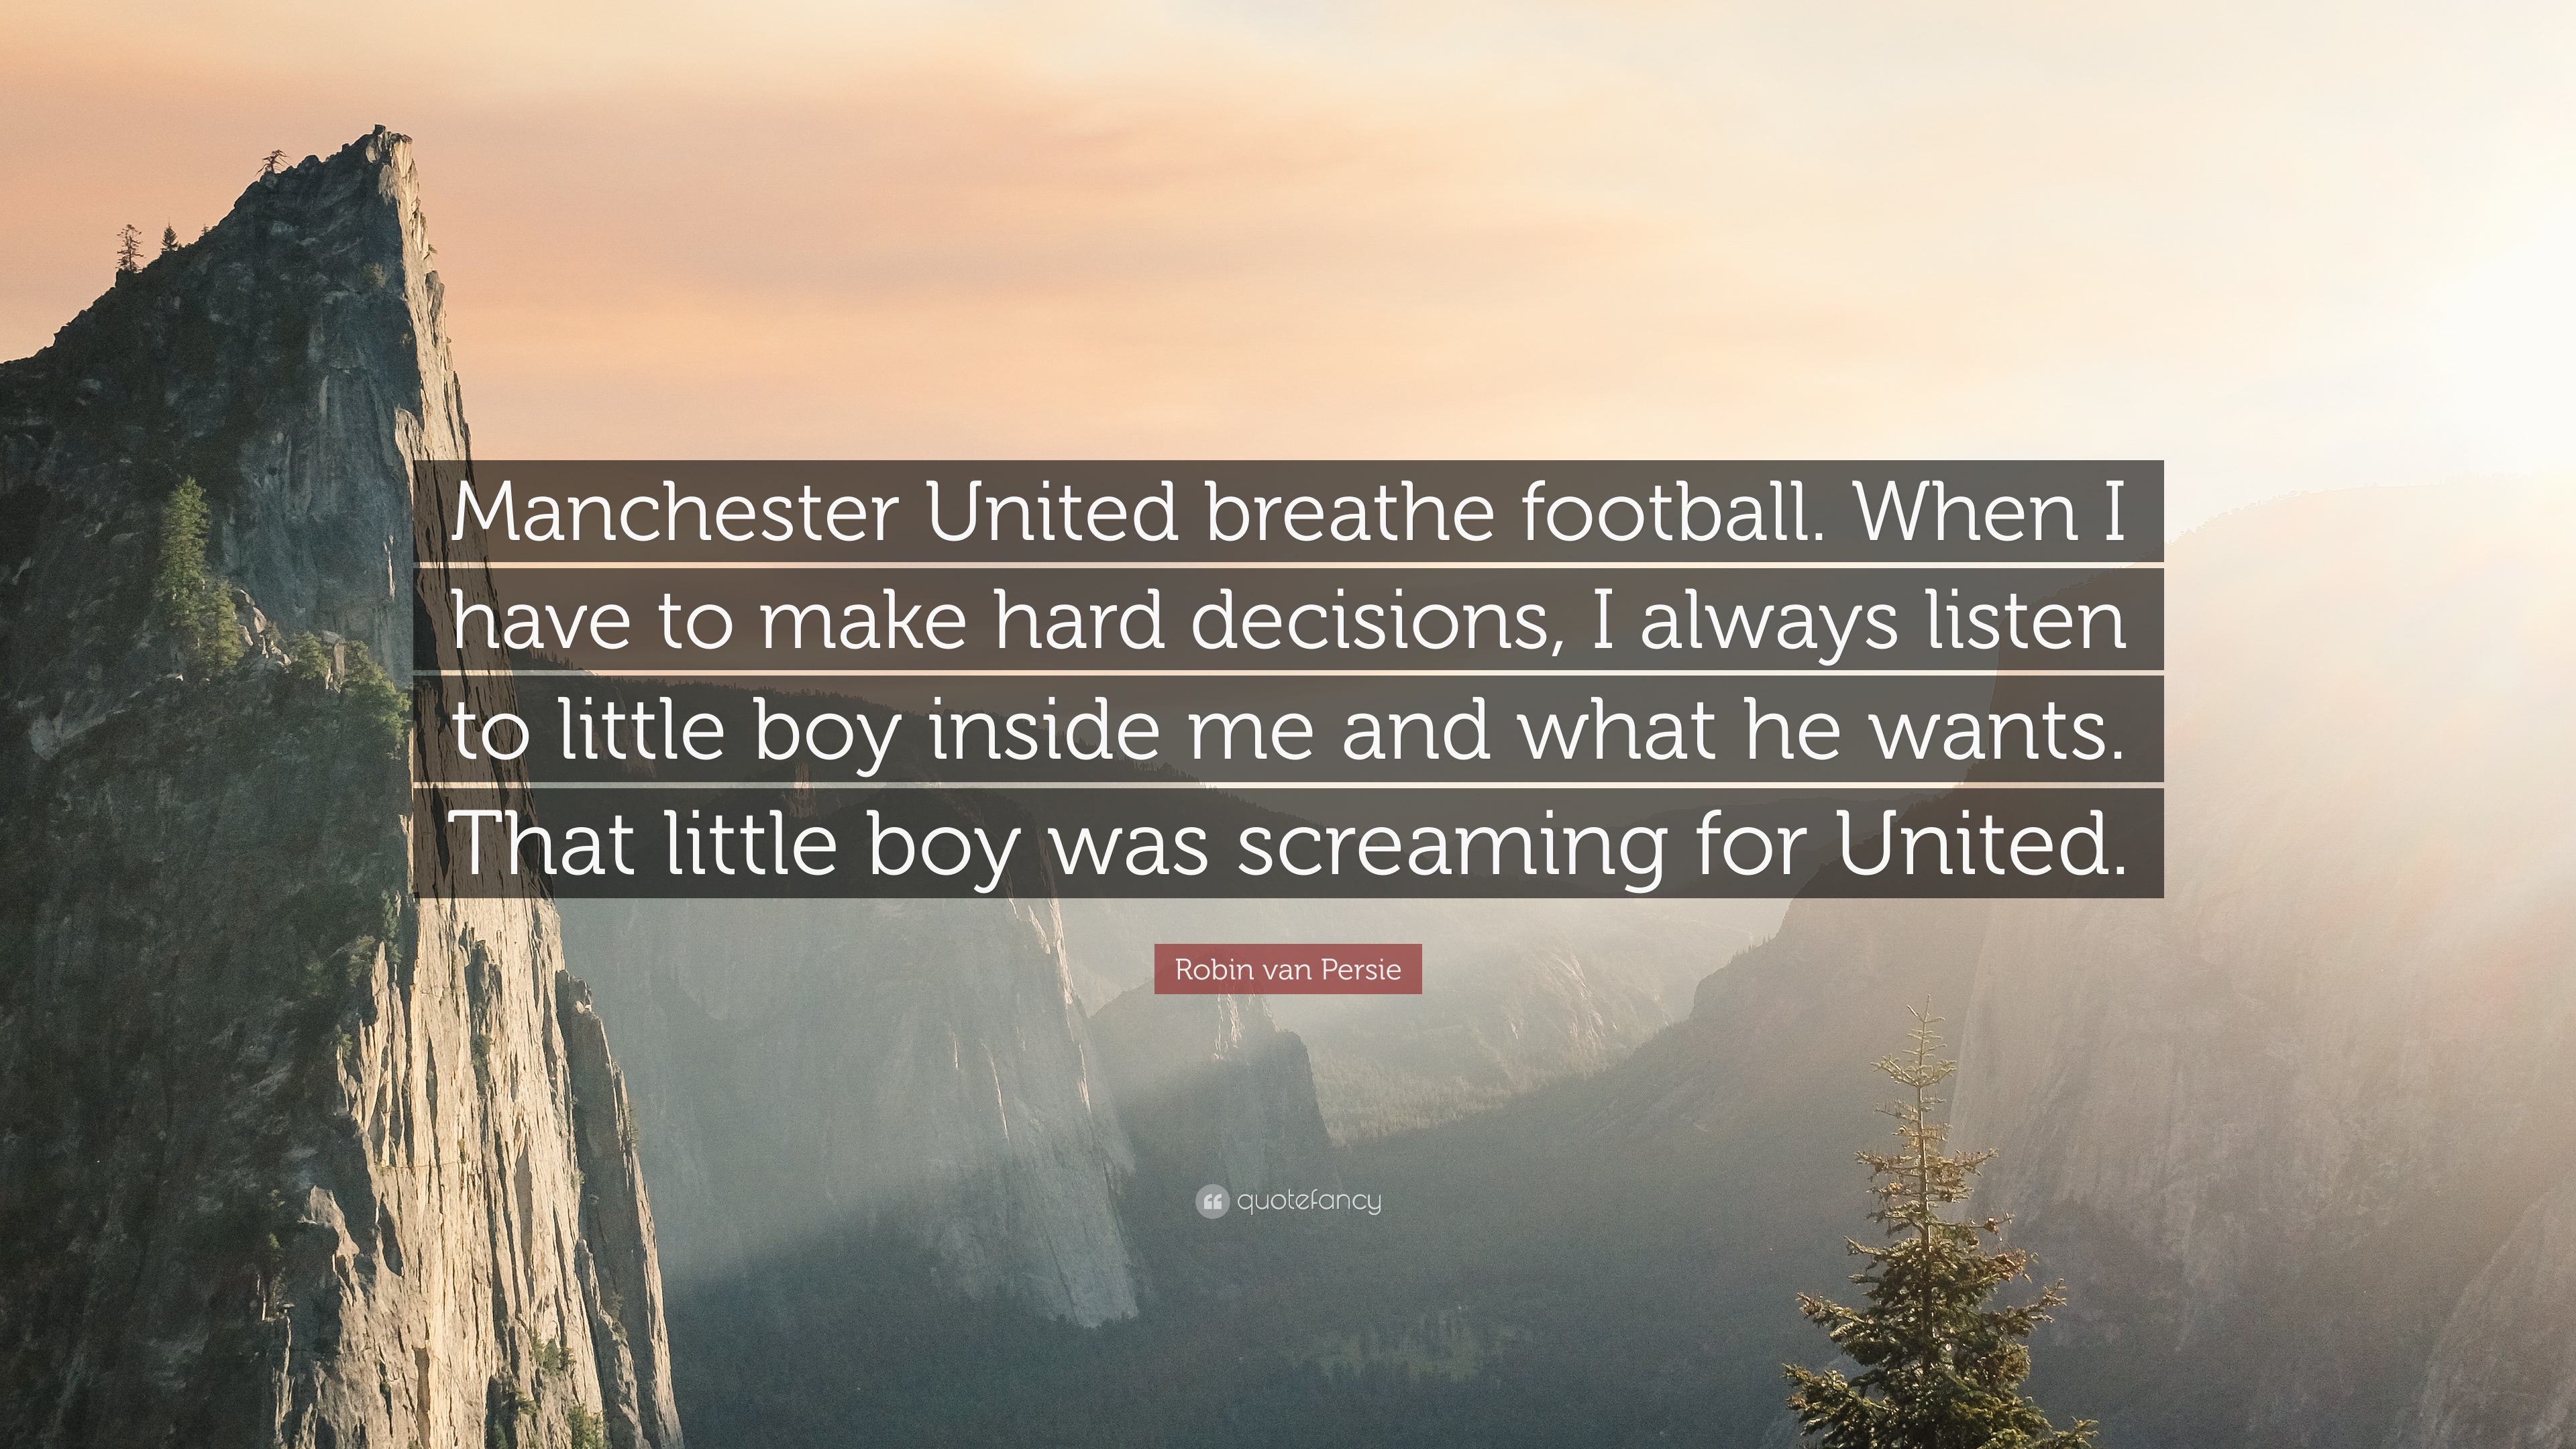 Robin Van Persie Quote Manchester United Breathe Football When I Have To Make Hard Decisions I Always Listen To Little Boy Inside Me And What 7 Wallpapers Quotefancy